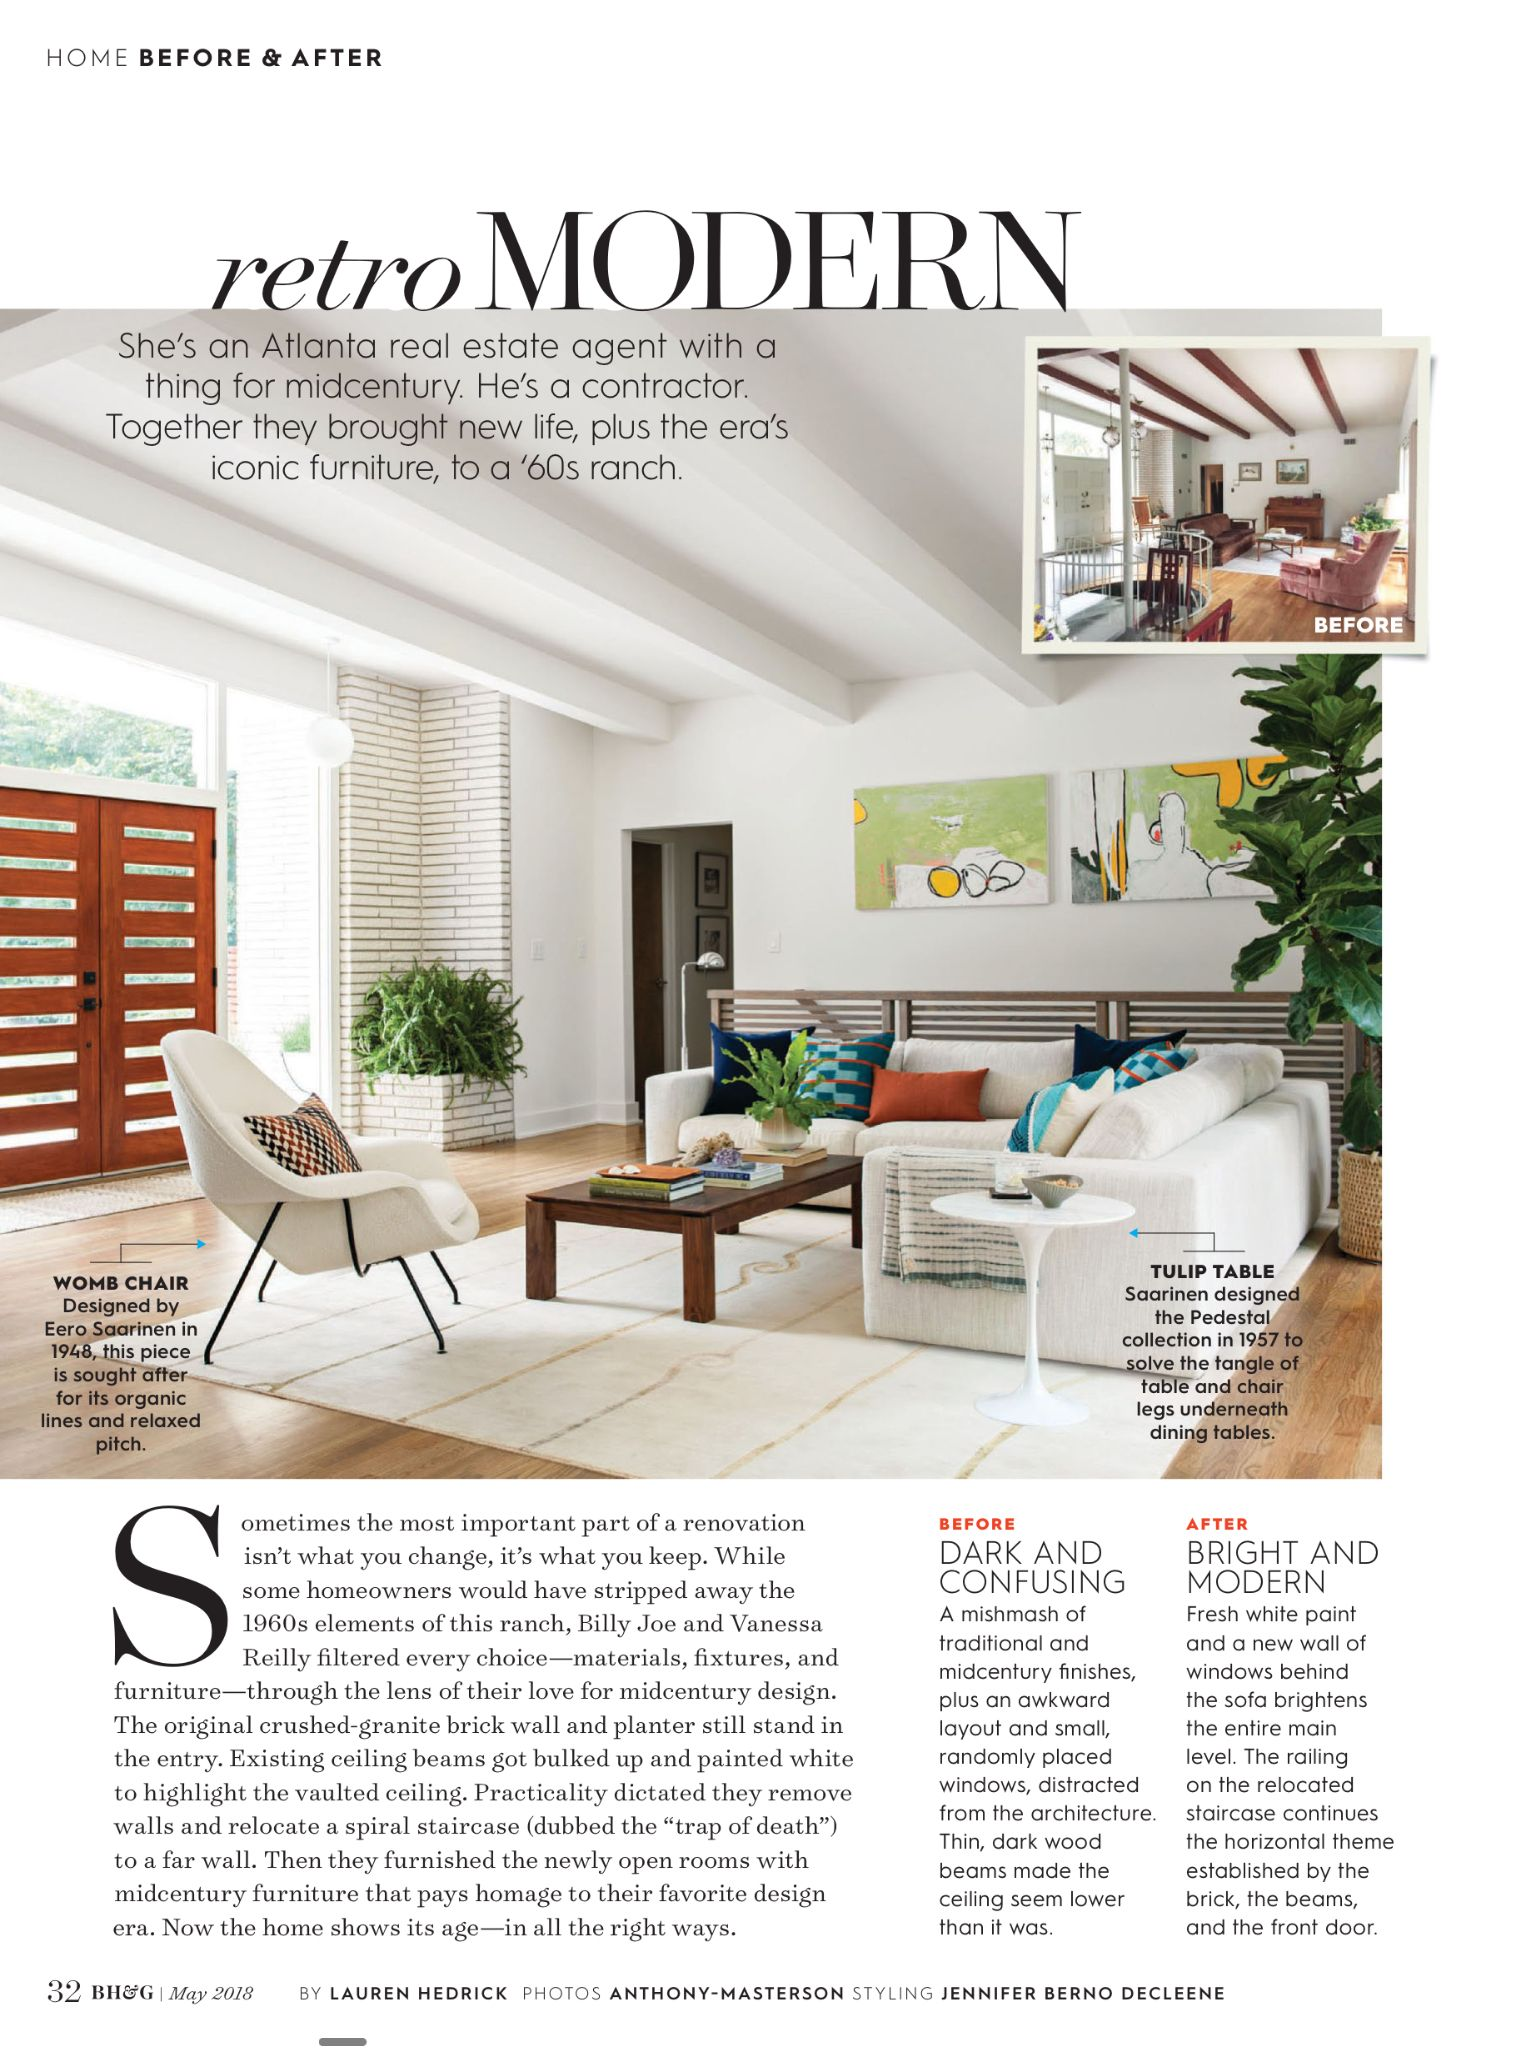 Retro Modern From Better Homes And Gardens May 2018 Read It On The Texture App Unlimited Access To 200 Top Magaz Formal Living Rooms Iconic Furniture Home